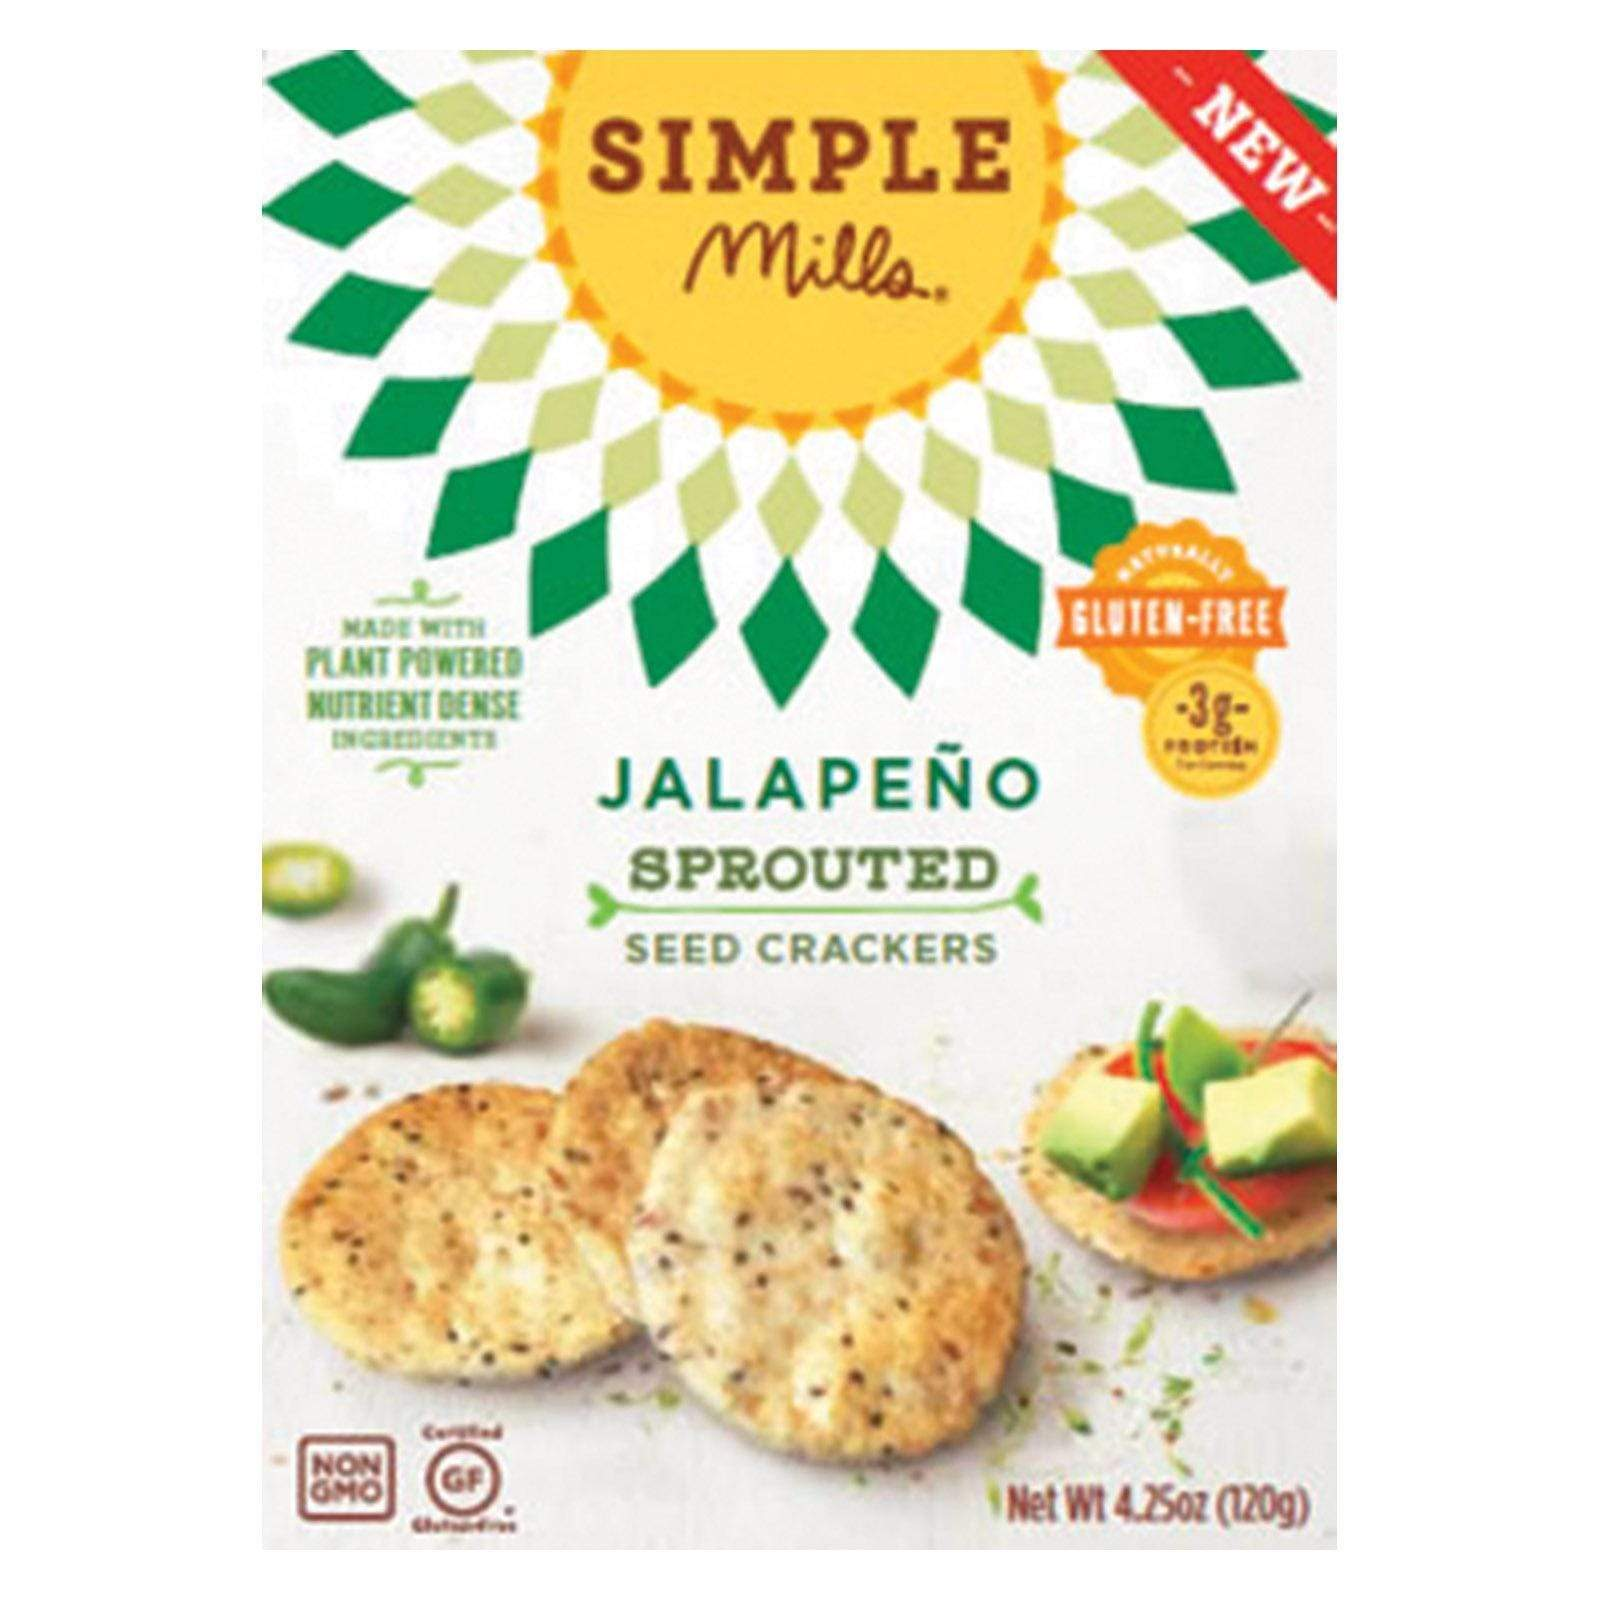 Simple Mills Crackers & Crispbreads Simple Mills Sprouted Seed Crackers - Jalapeno - Case Of 6 - 4.25 Oz